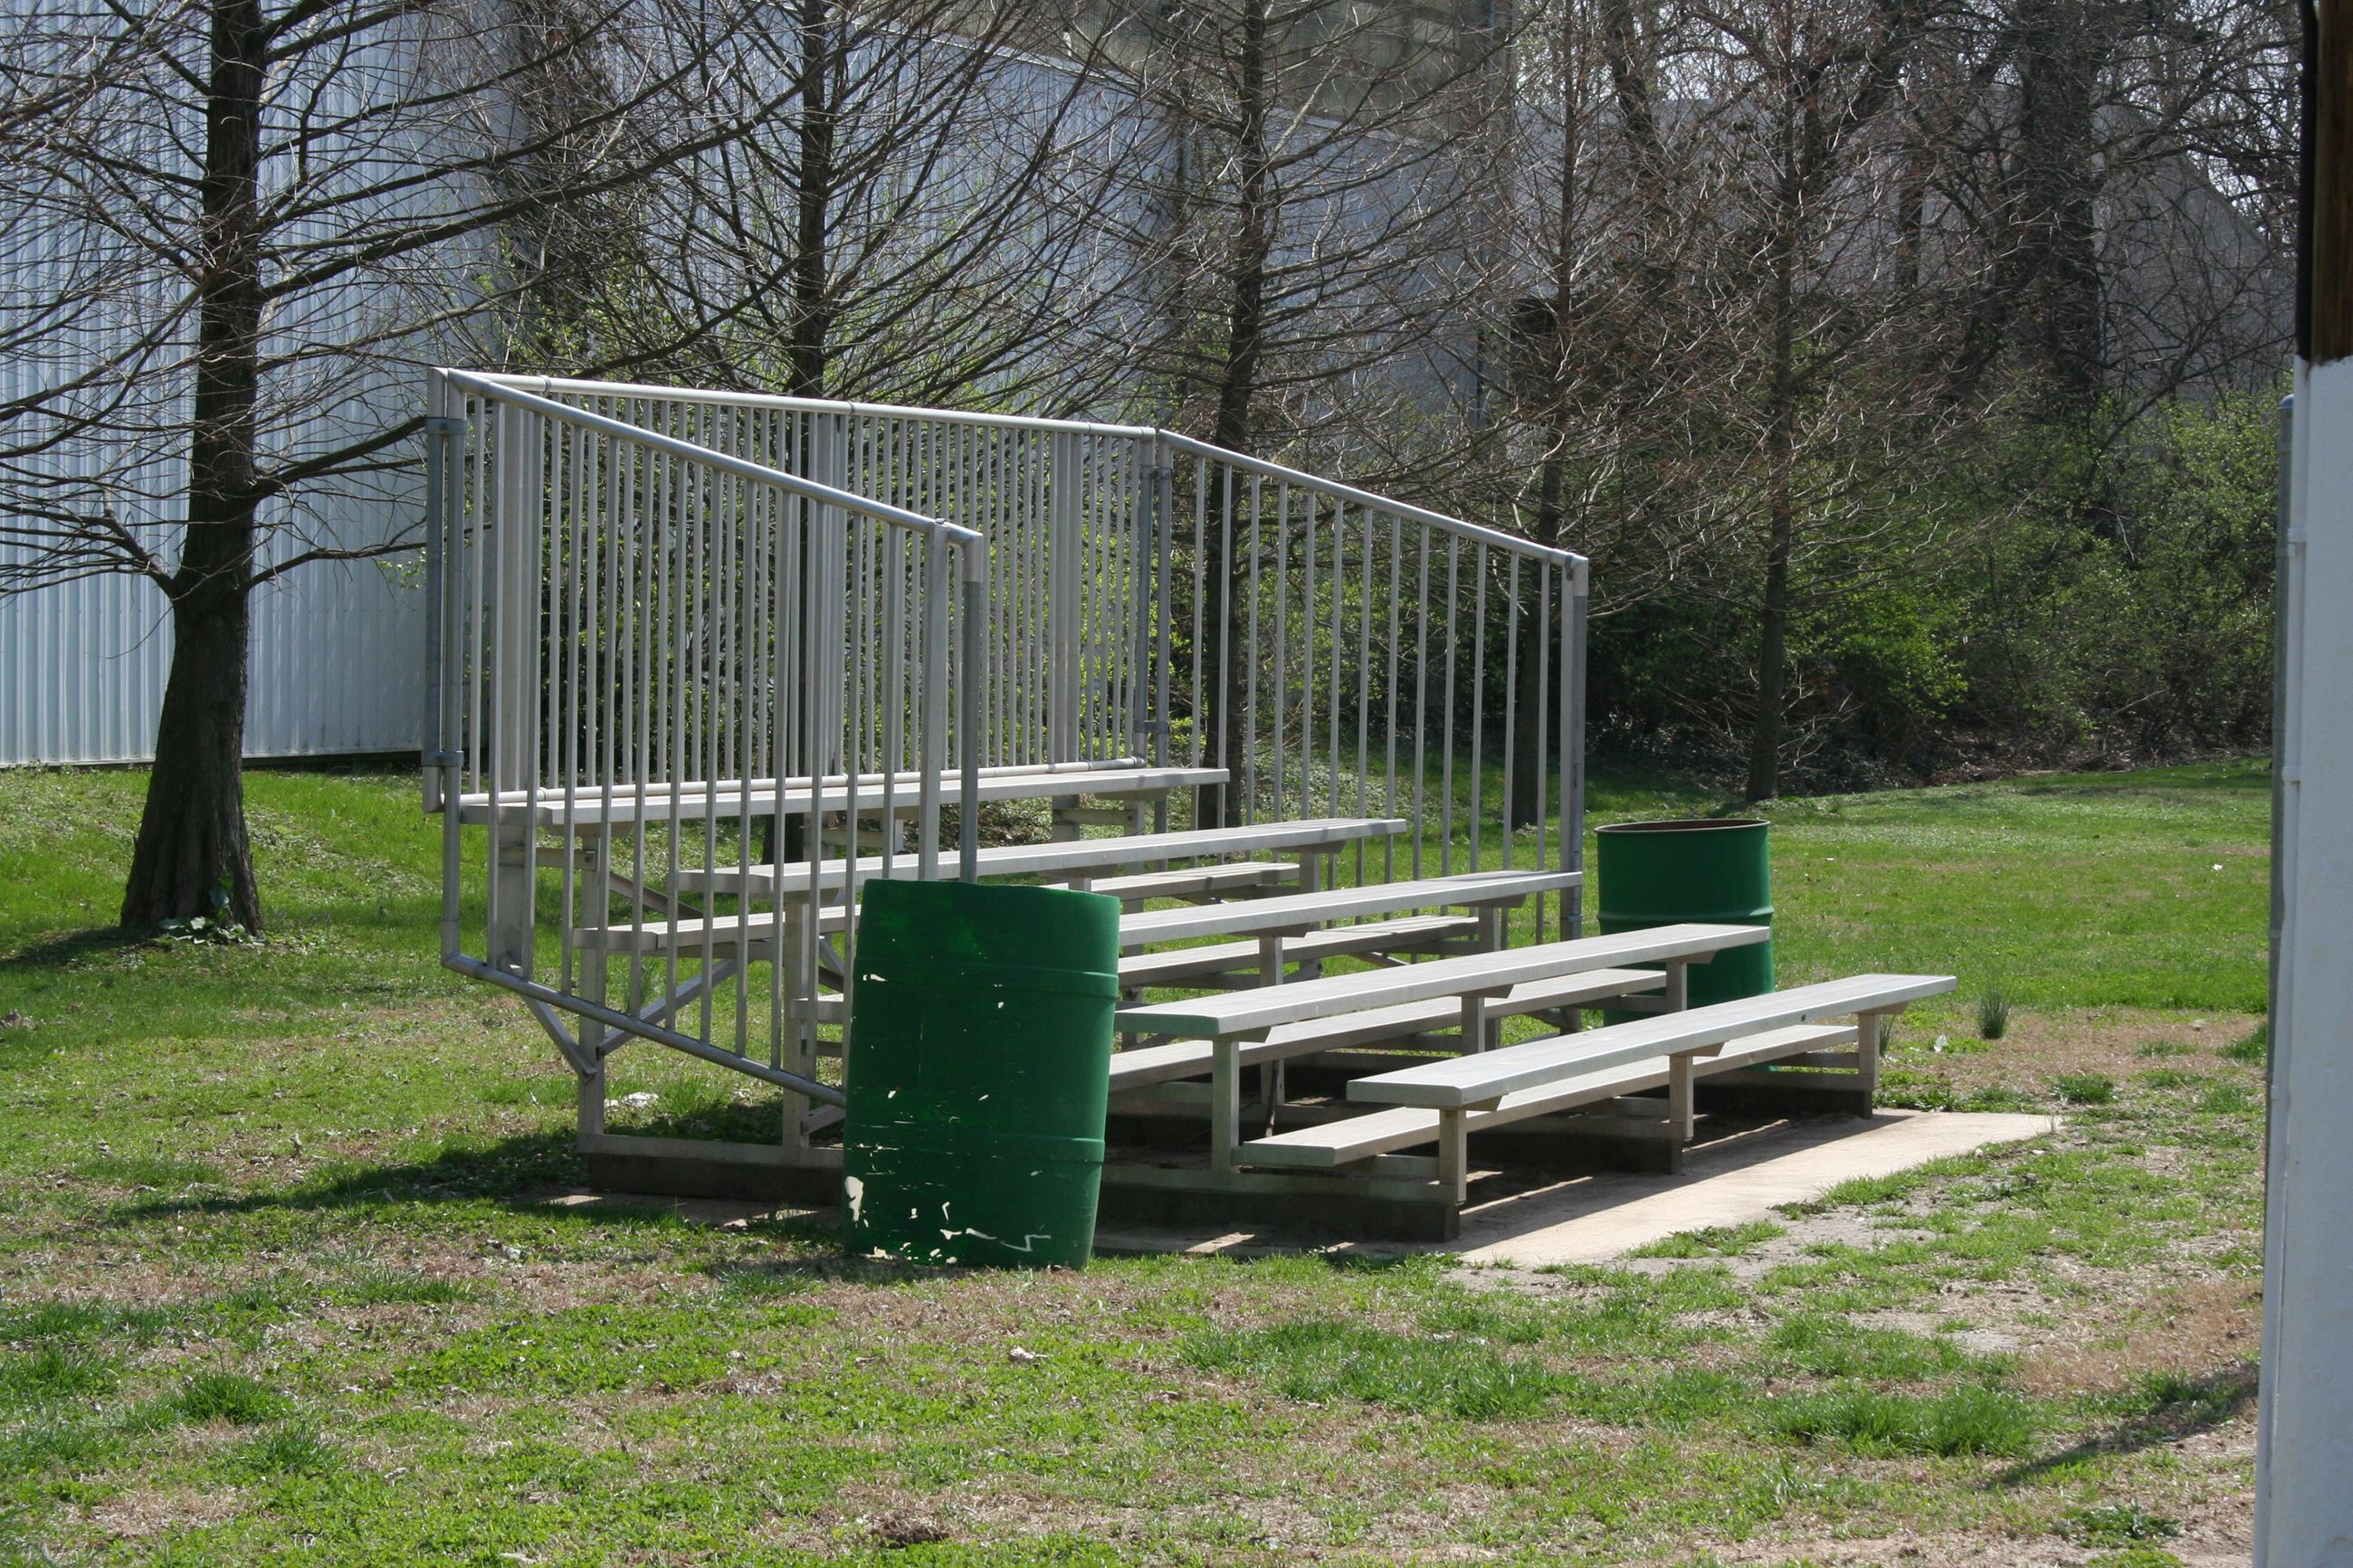 SoftballBleachers